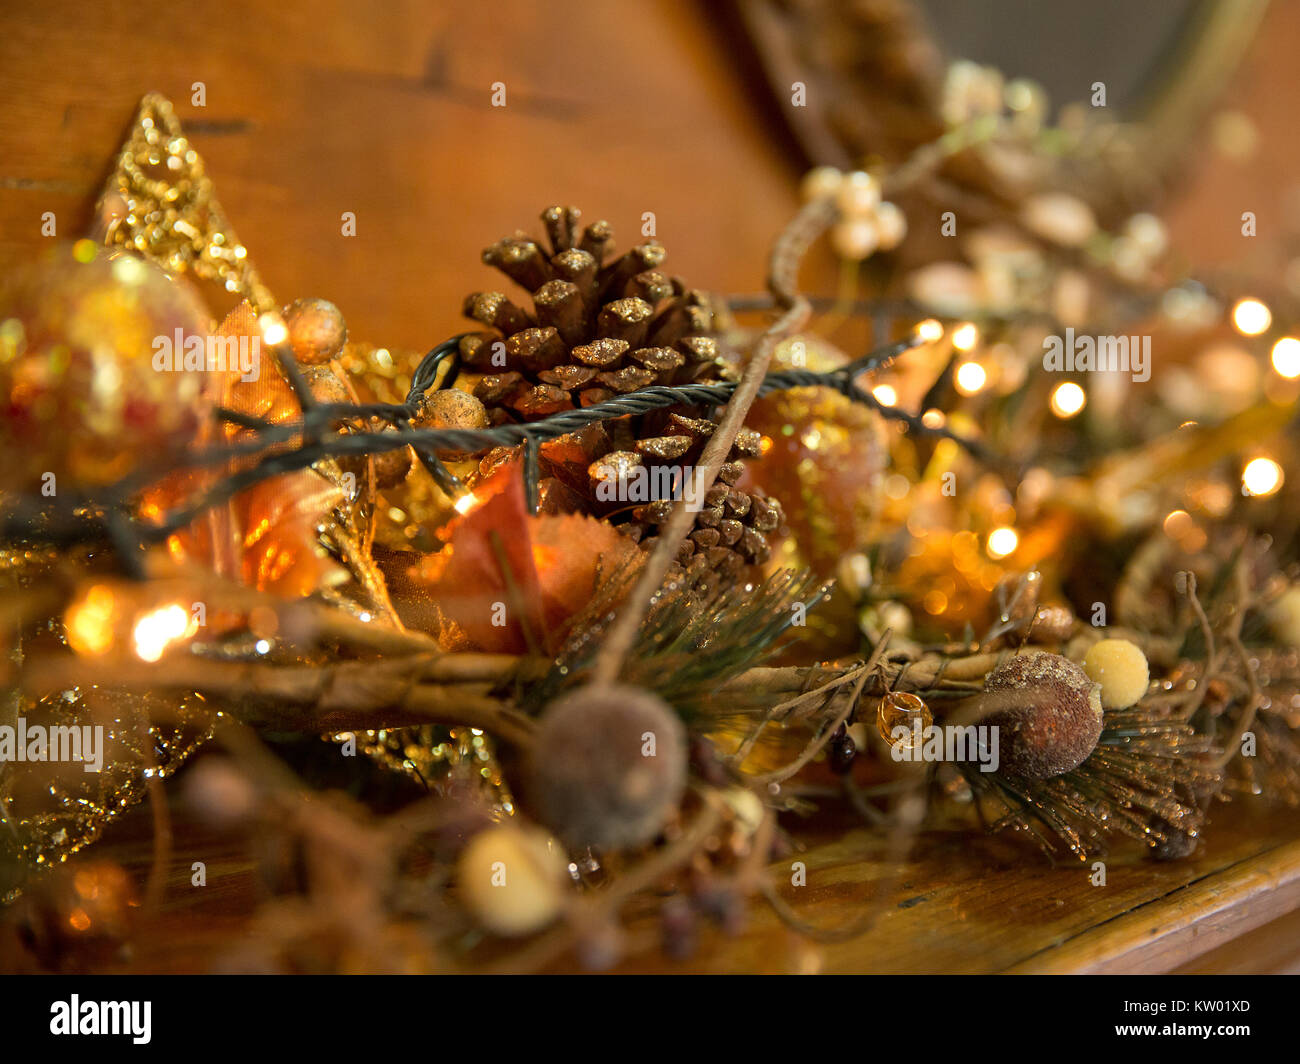 Christmas Decorations with Baubles, Stockings, Hearts, Sparkles, reindeer, fire place, Christmas eve - Stock Image